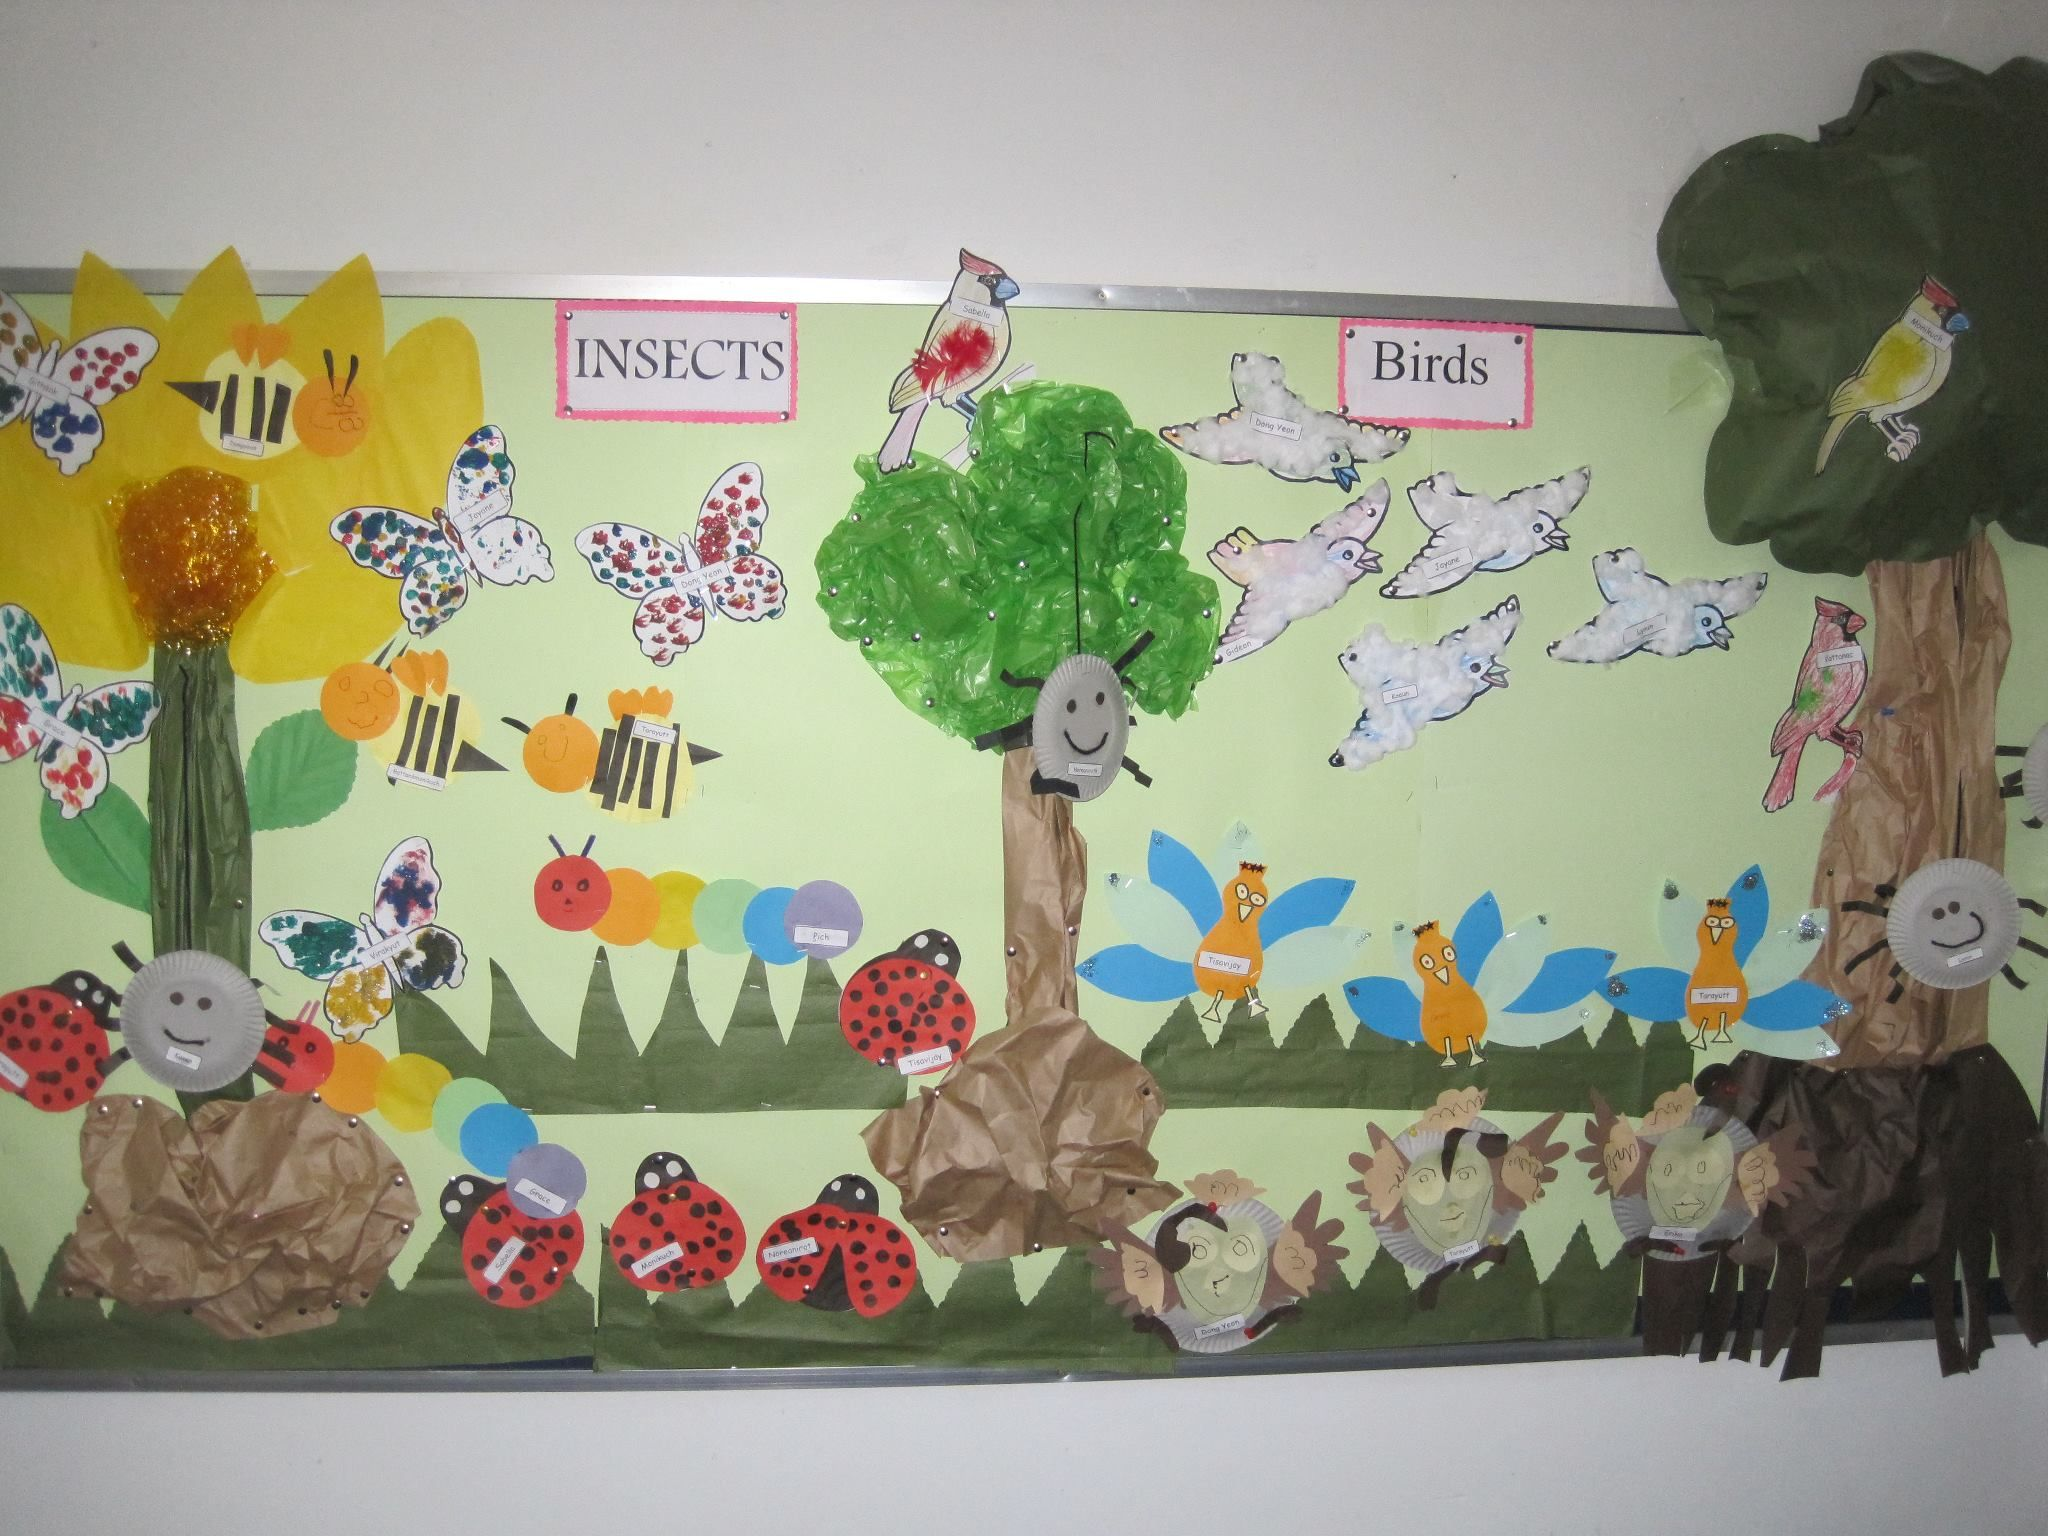 Go green vegetable bulletin board idea myclassroomideas com - Children S Selected Work For Our Theme Topic Birds And Insects Bulletin Board Displaybulletin Boardsdisplay Ideaschildren